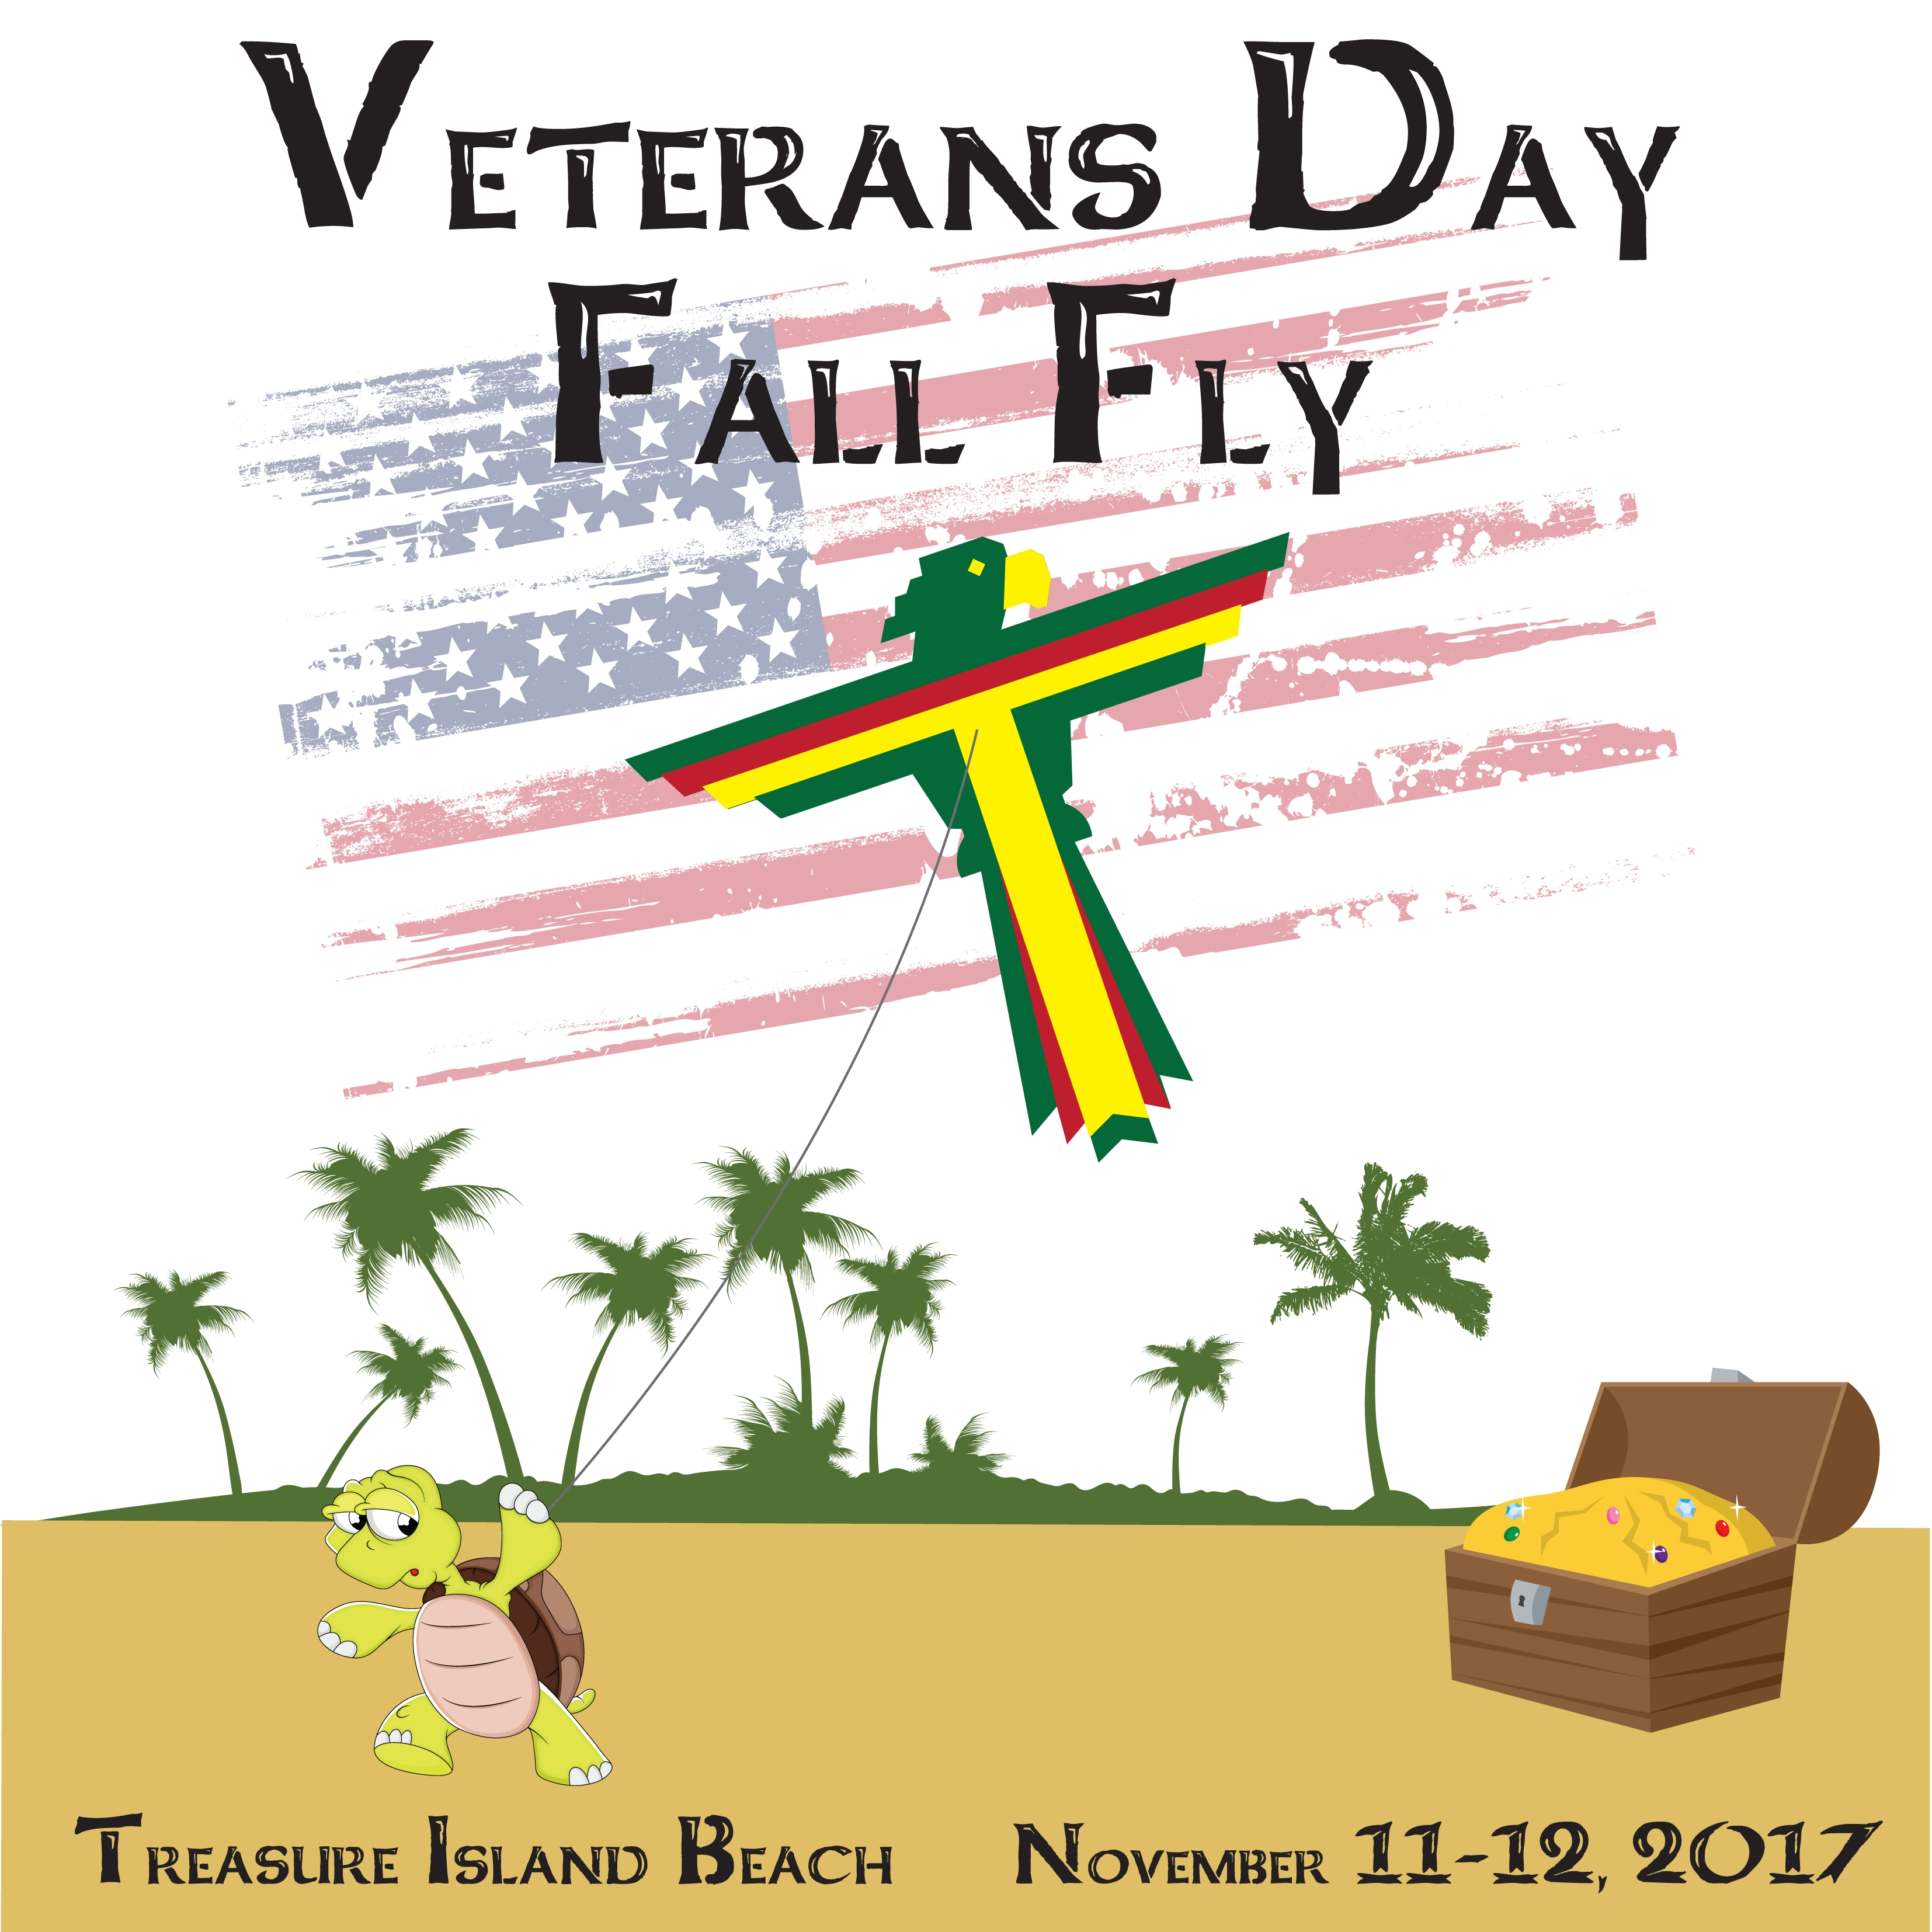 Veterans Day Fall Fly on TI (Kite Festival)